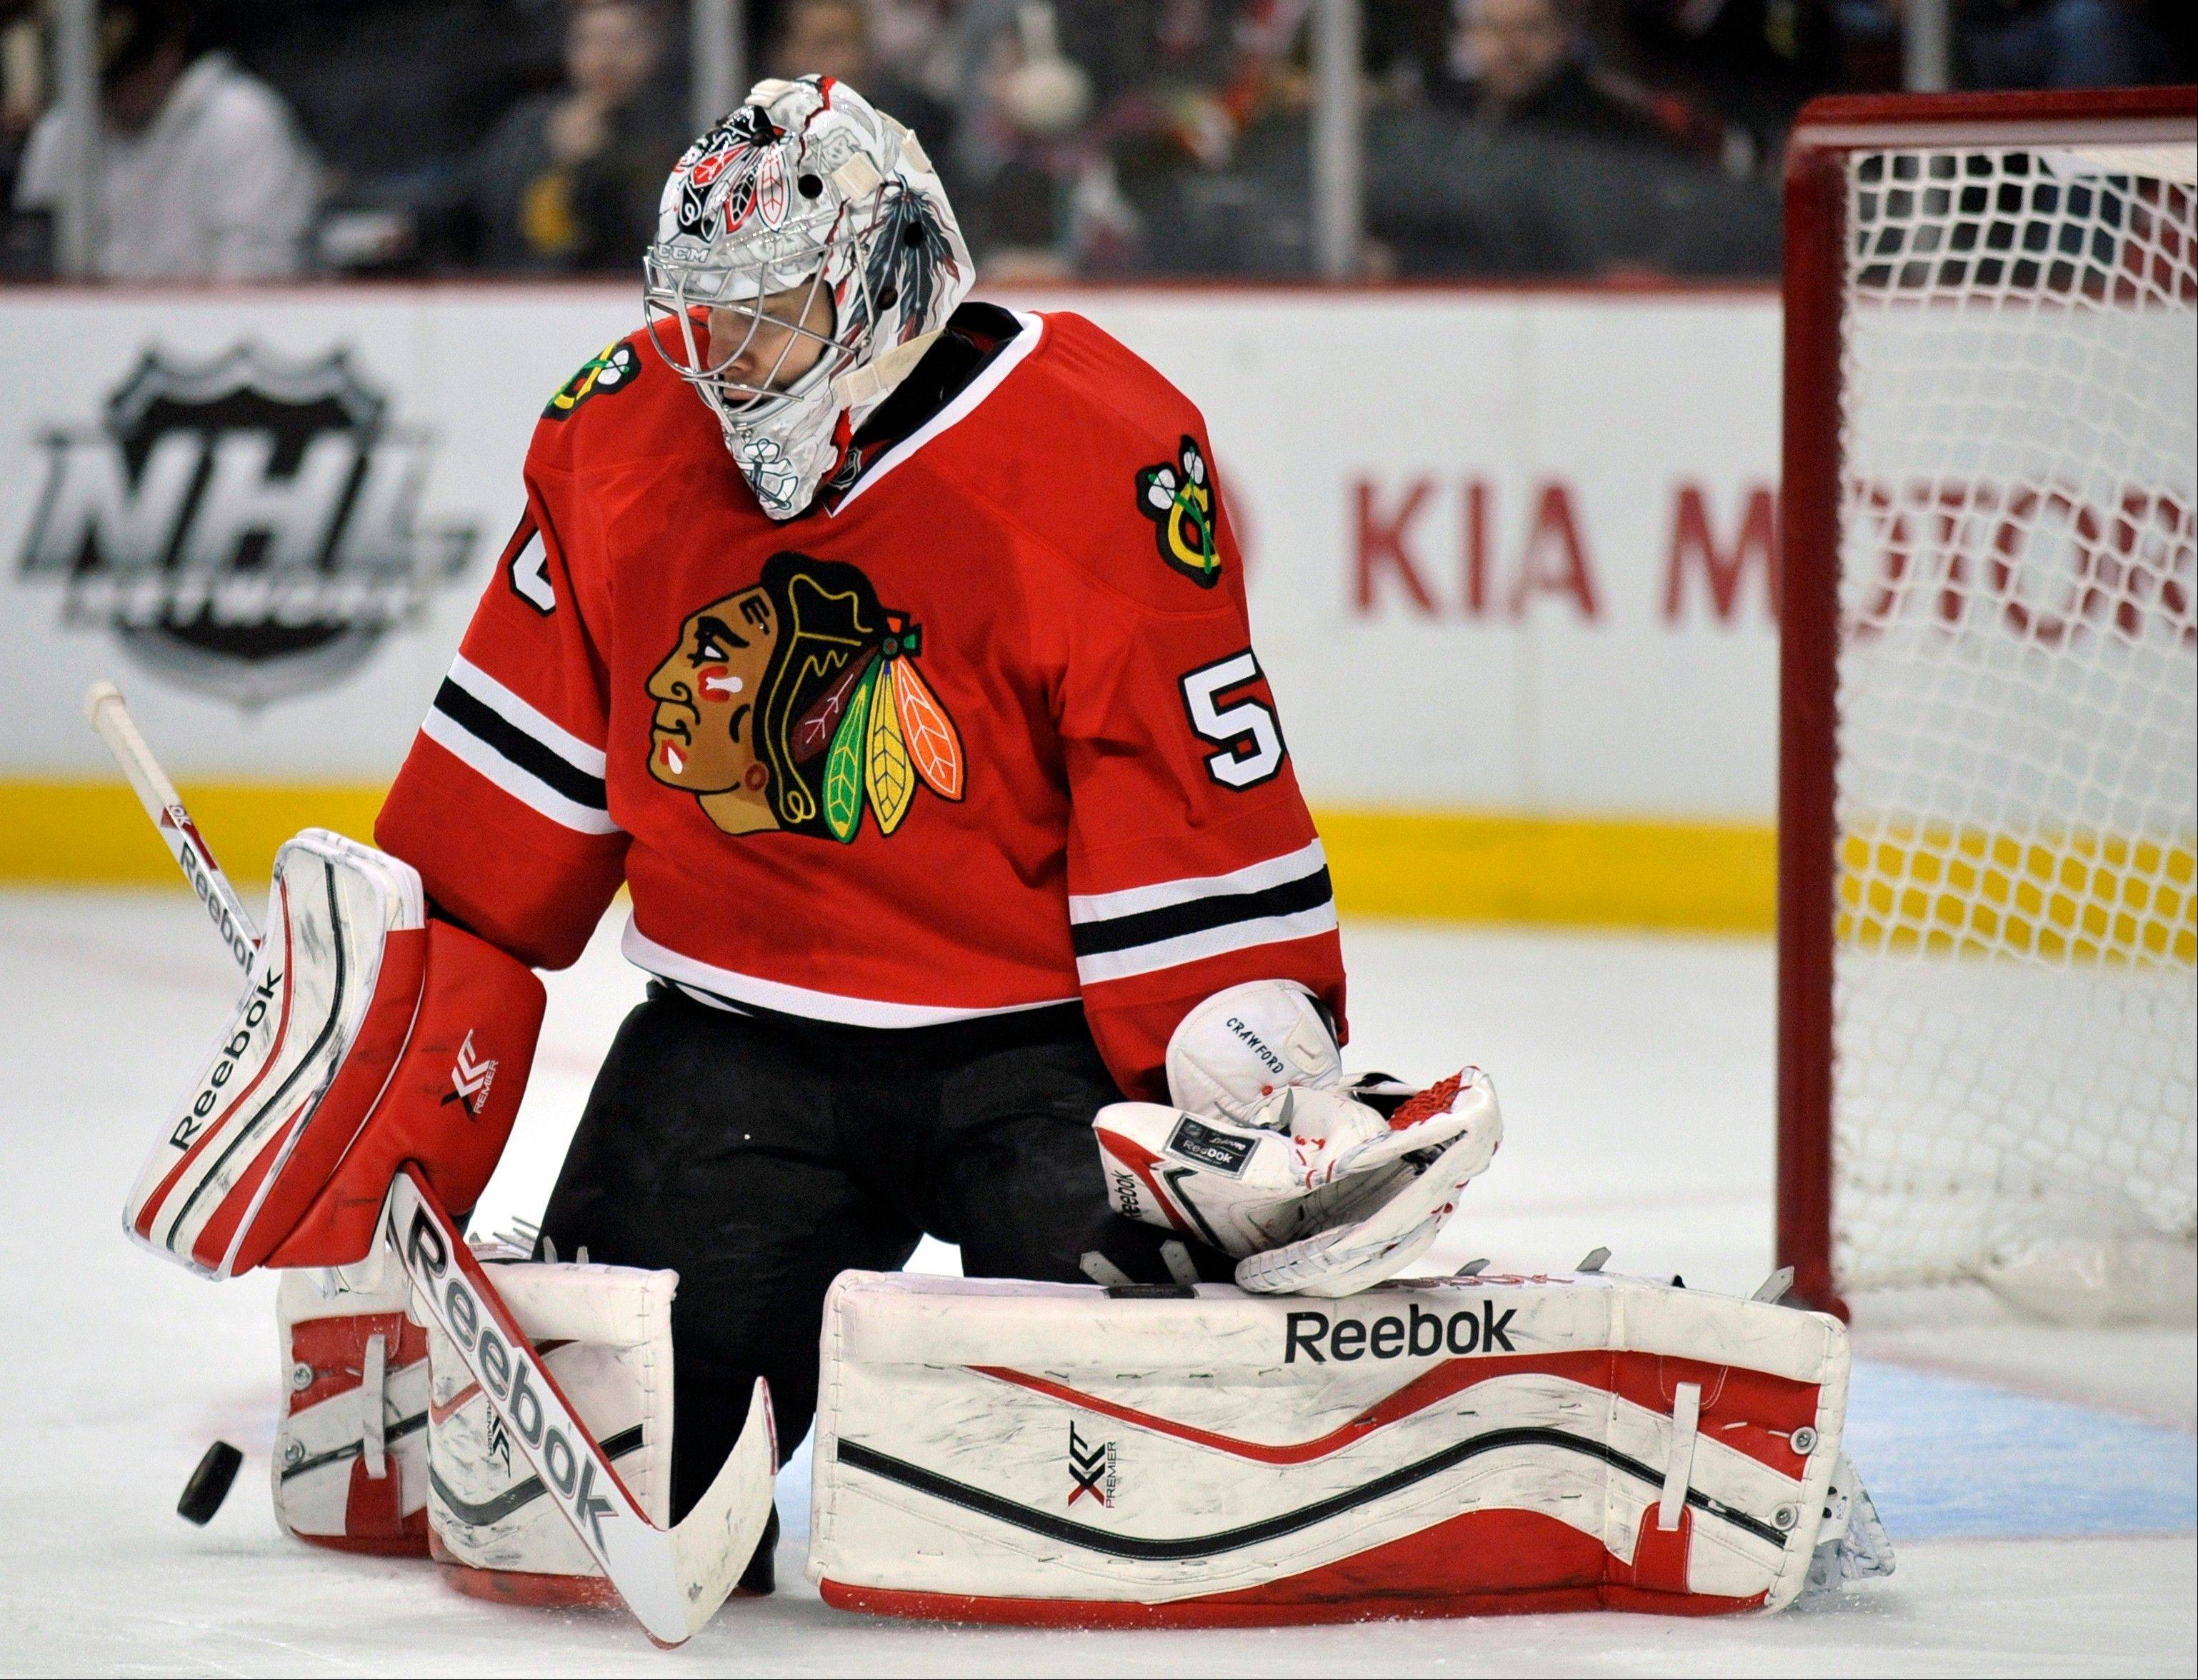 Chicago Blackhawks goalie Corey Crawford makes a save during the first period of an NHL hockey game Sunday against the San Jose Sharks in Chicago